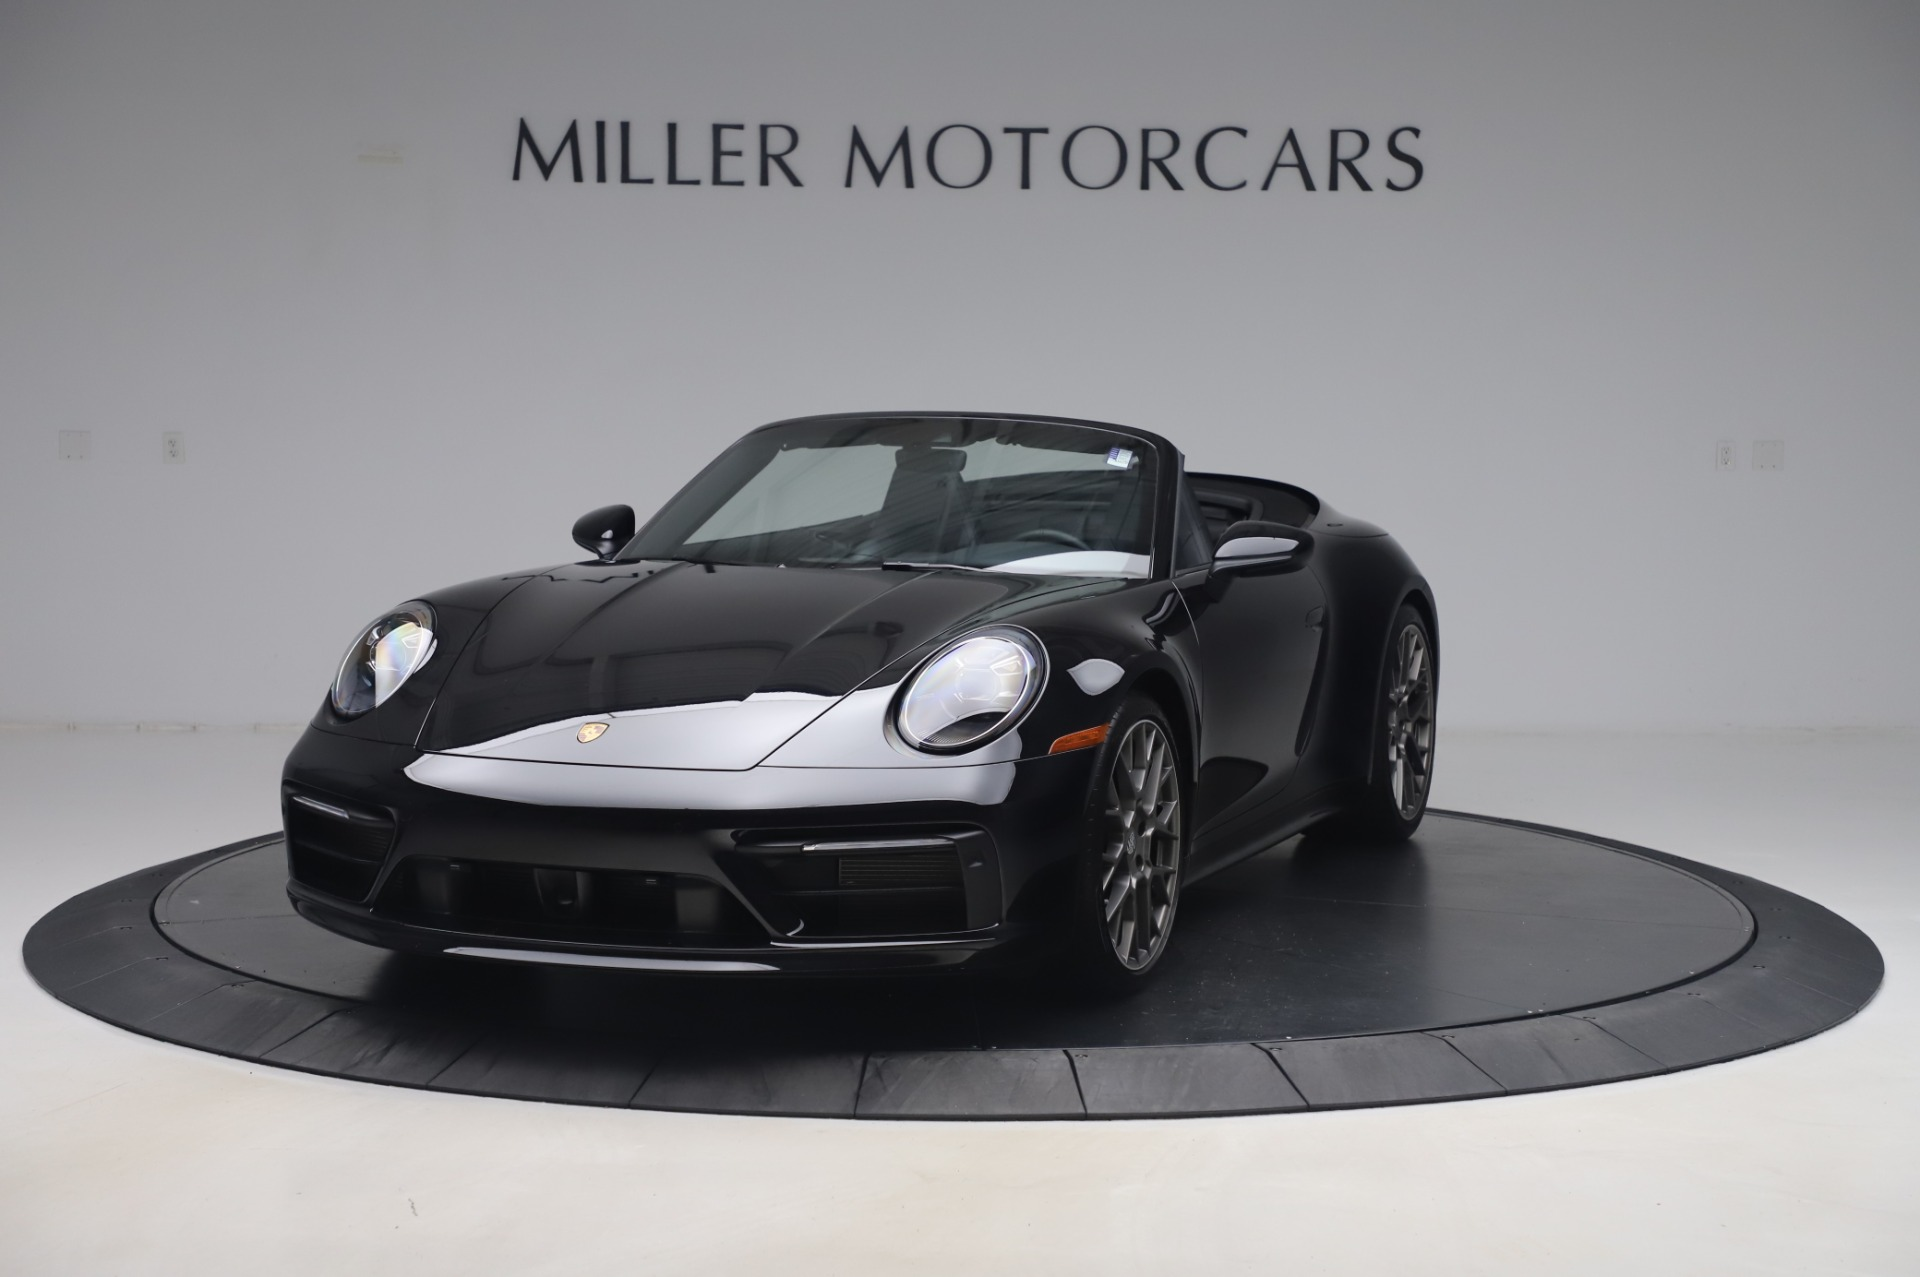 Used 2020 Porsche 911 Carrera 4S for sale $142,900 at Aston Martin of Greenwich in Greenwich CT 06830 1